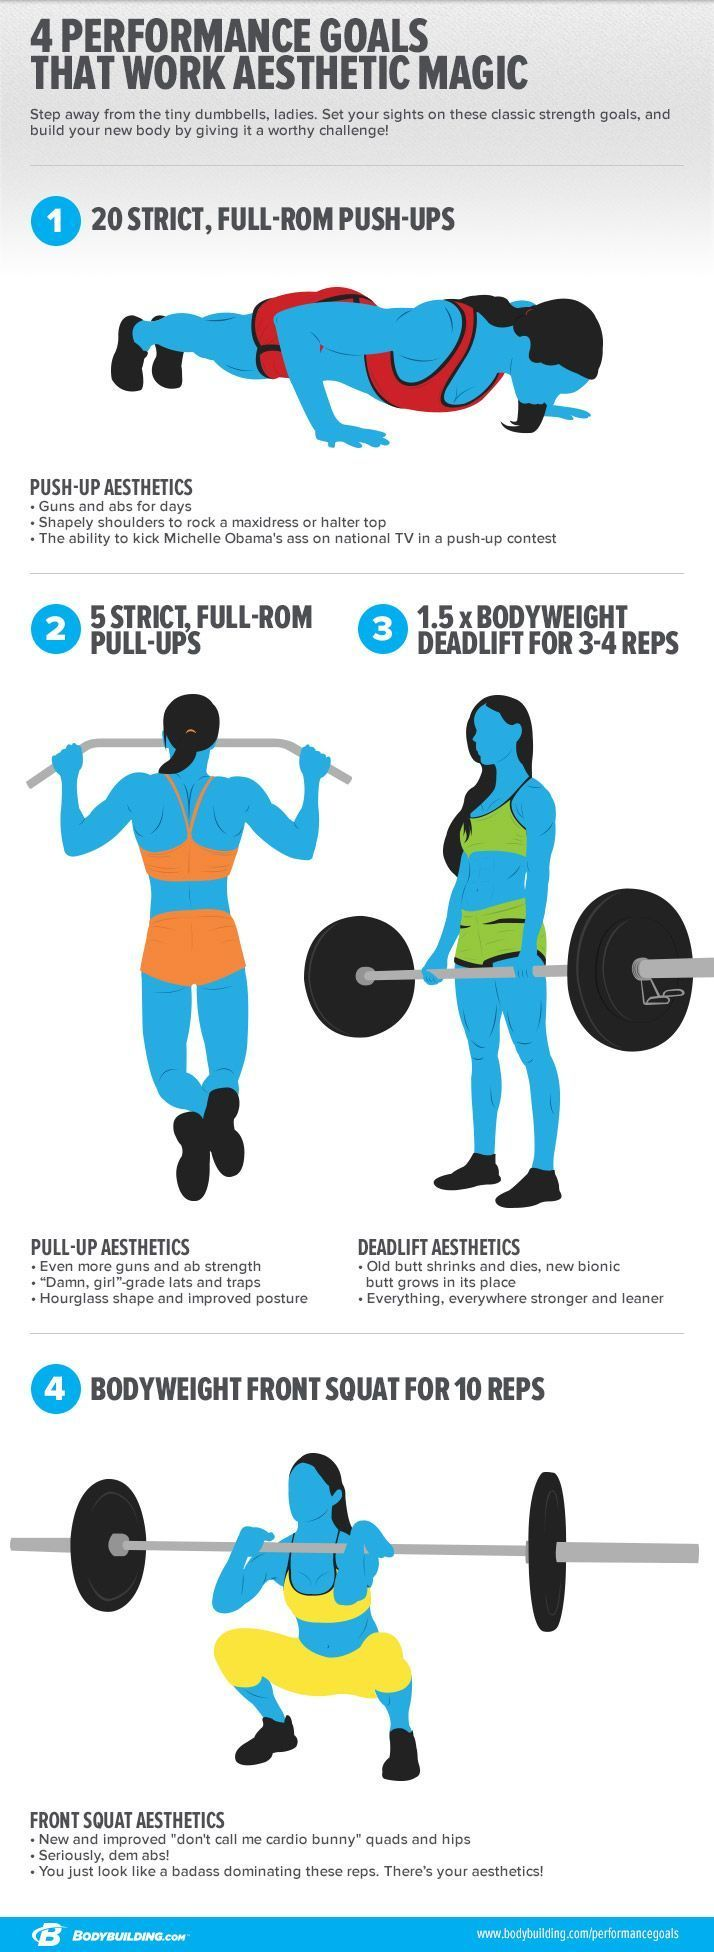 Strength Goals For A Beautiful Body Gorgeous body Strength and